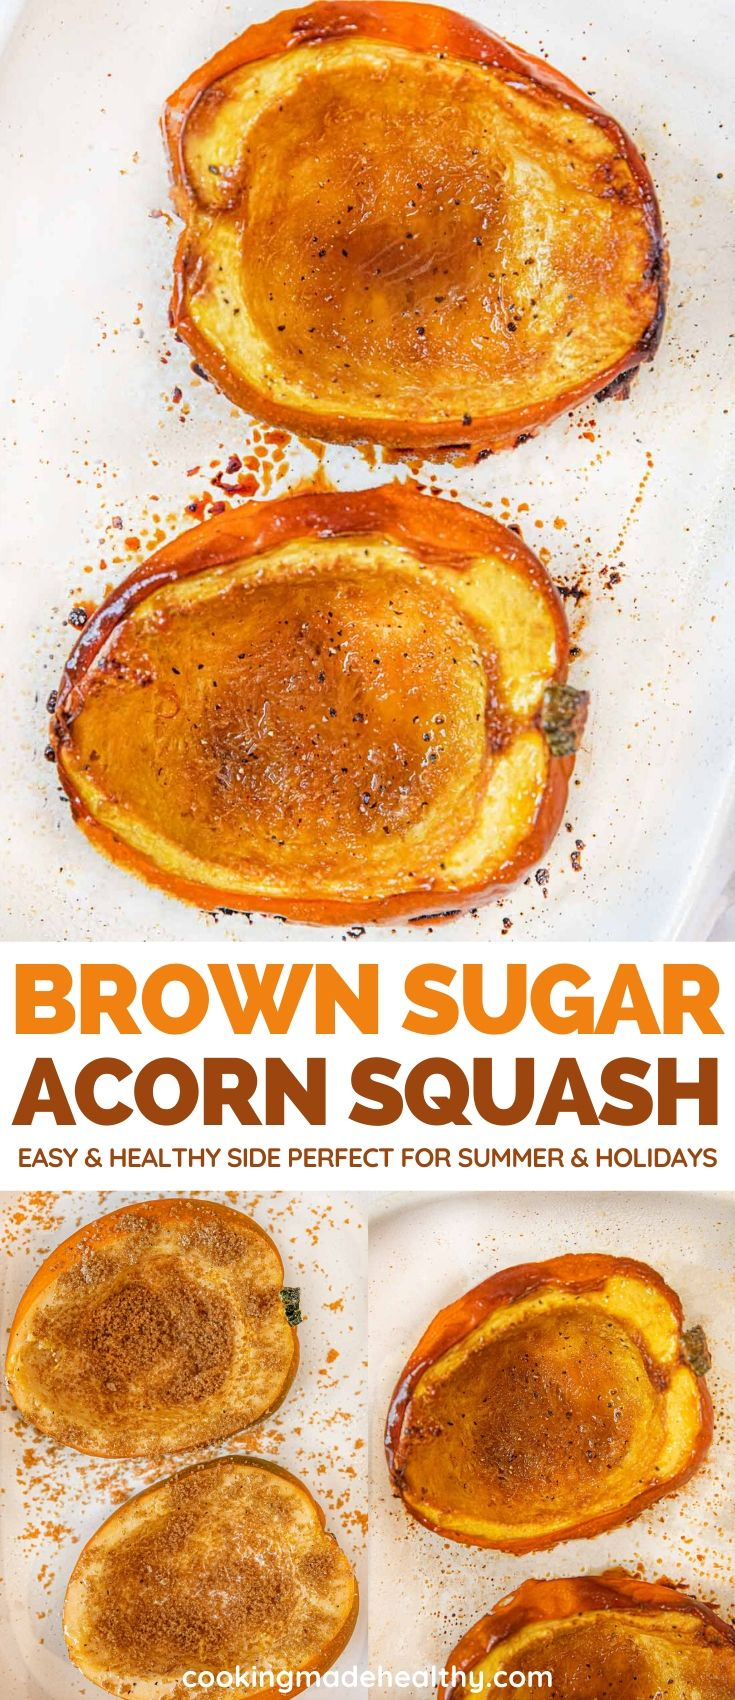 Brown Sugar Acorn Squashis an easy healthy side dish roasted in the oven with brown sugar, butter and spices that's great for summer or holiday dishes.